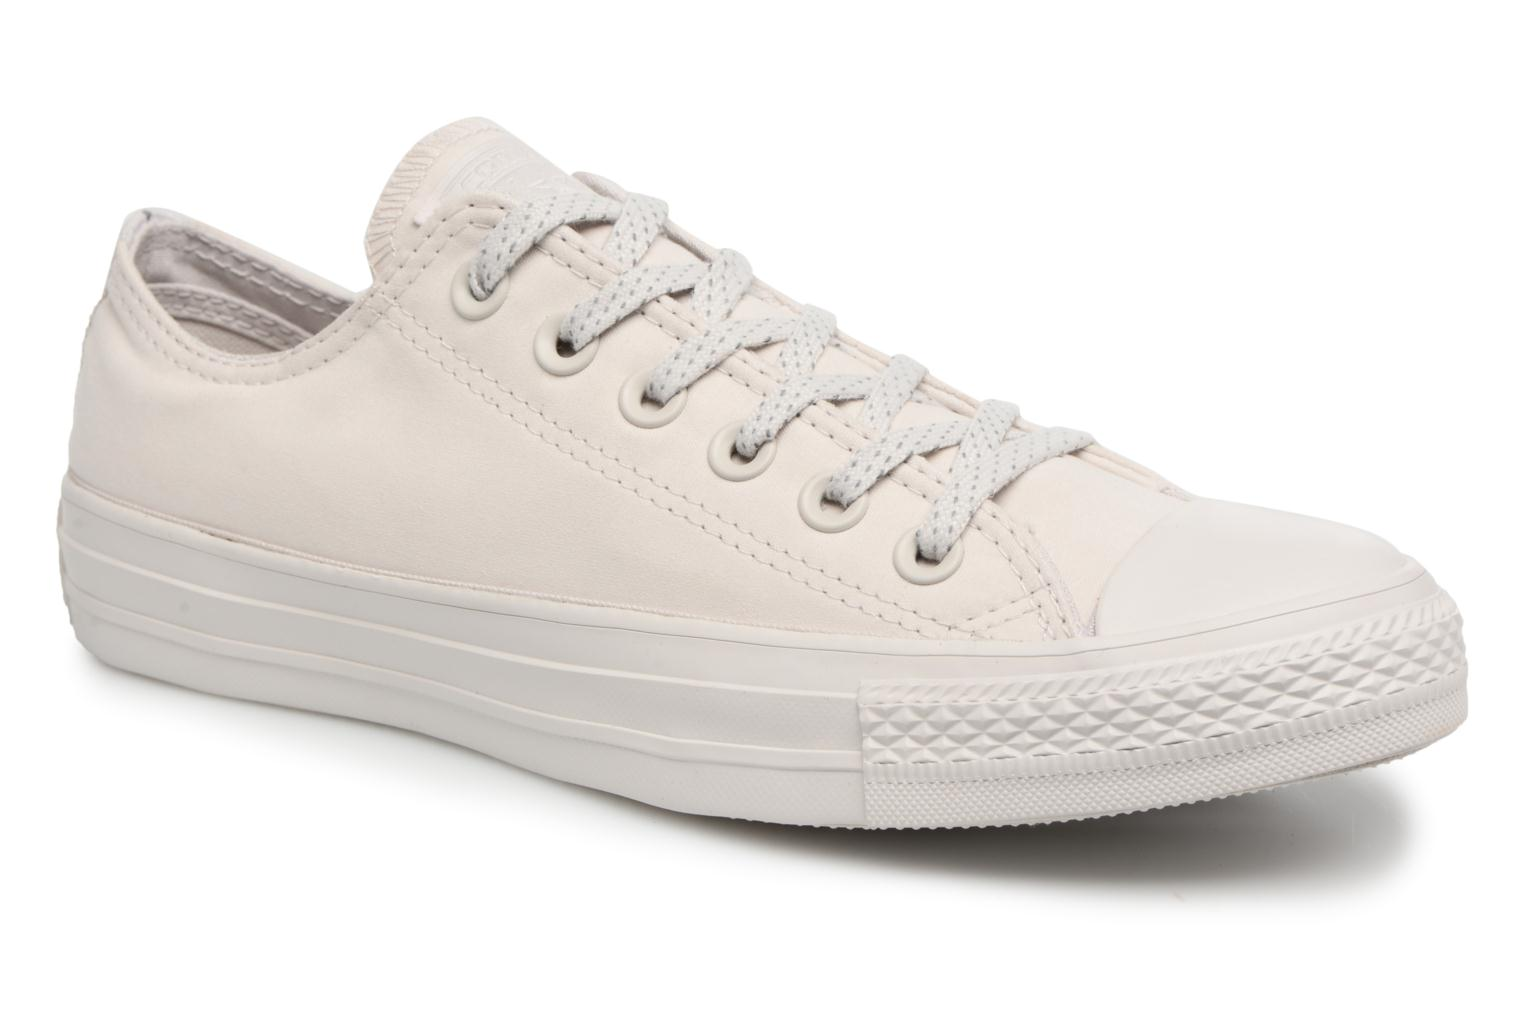 Chuck Taylor All Star Ox 555979C PALE PUTTY/PALE PUTTY